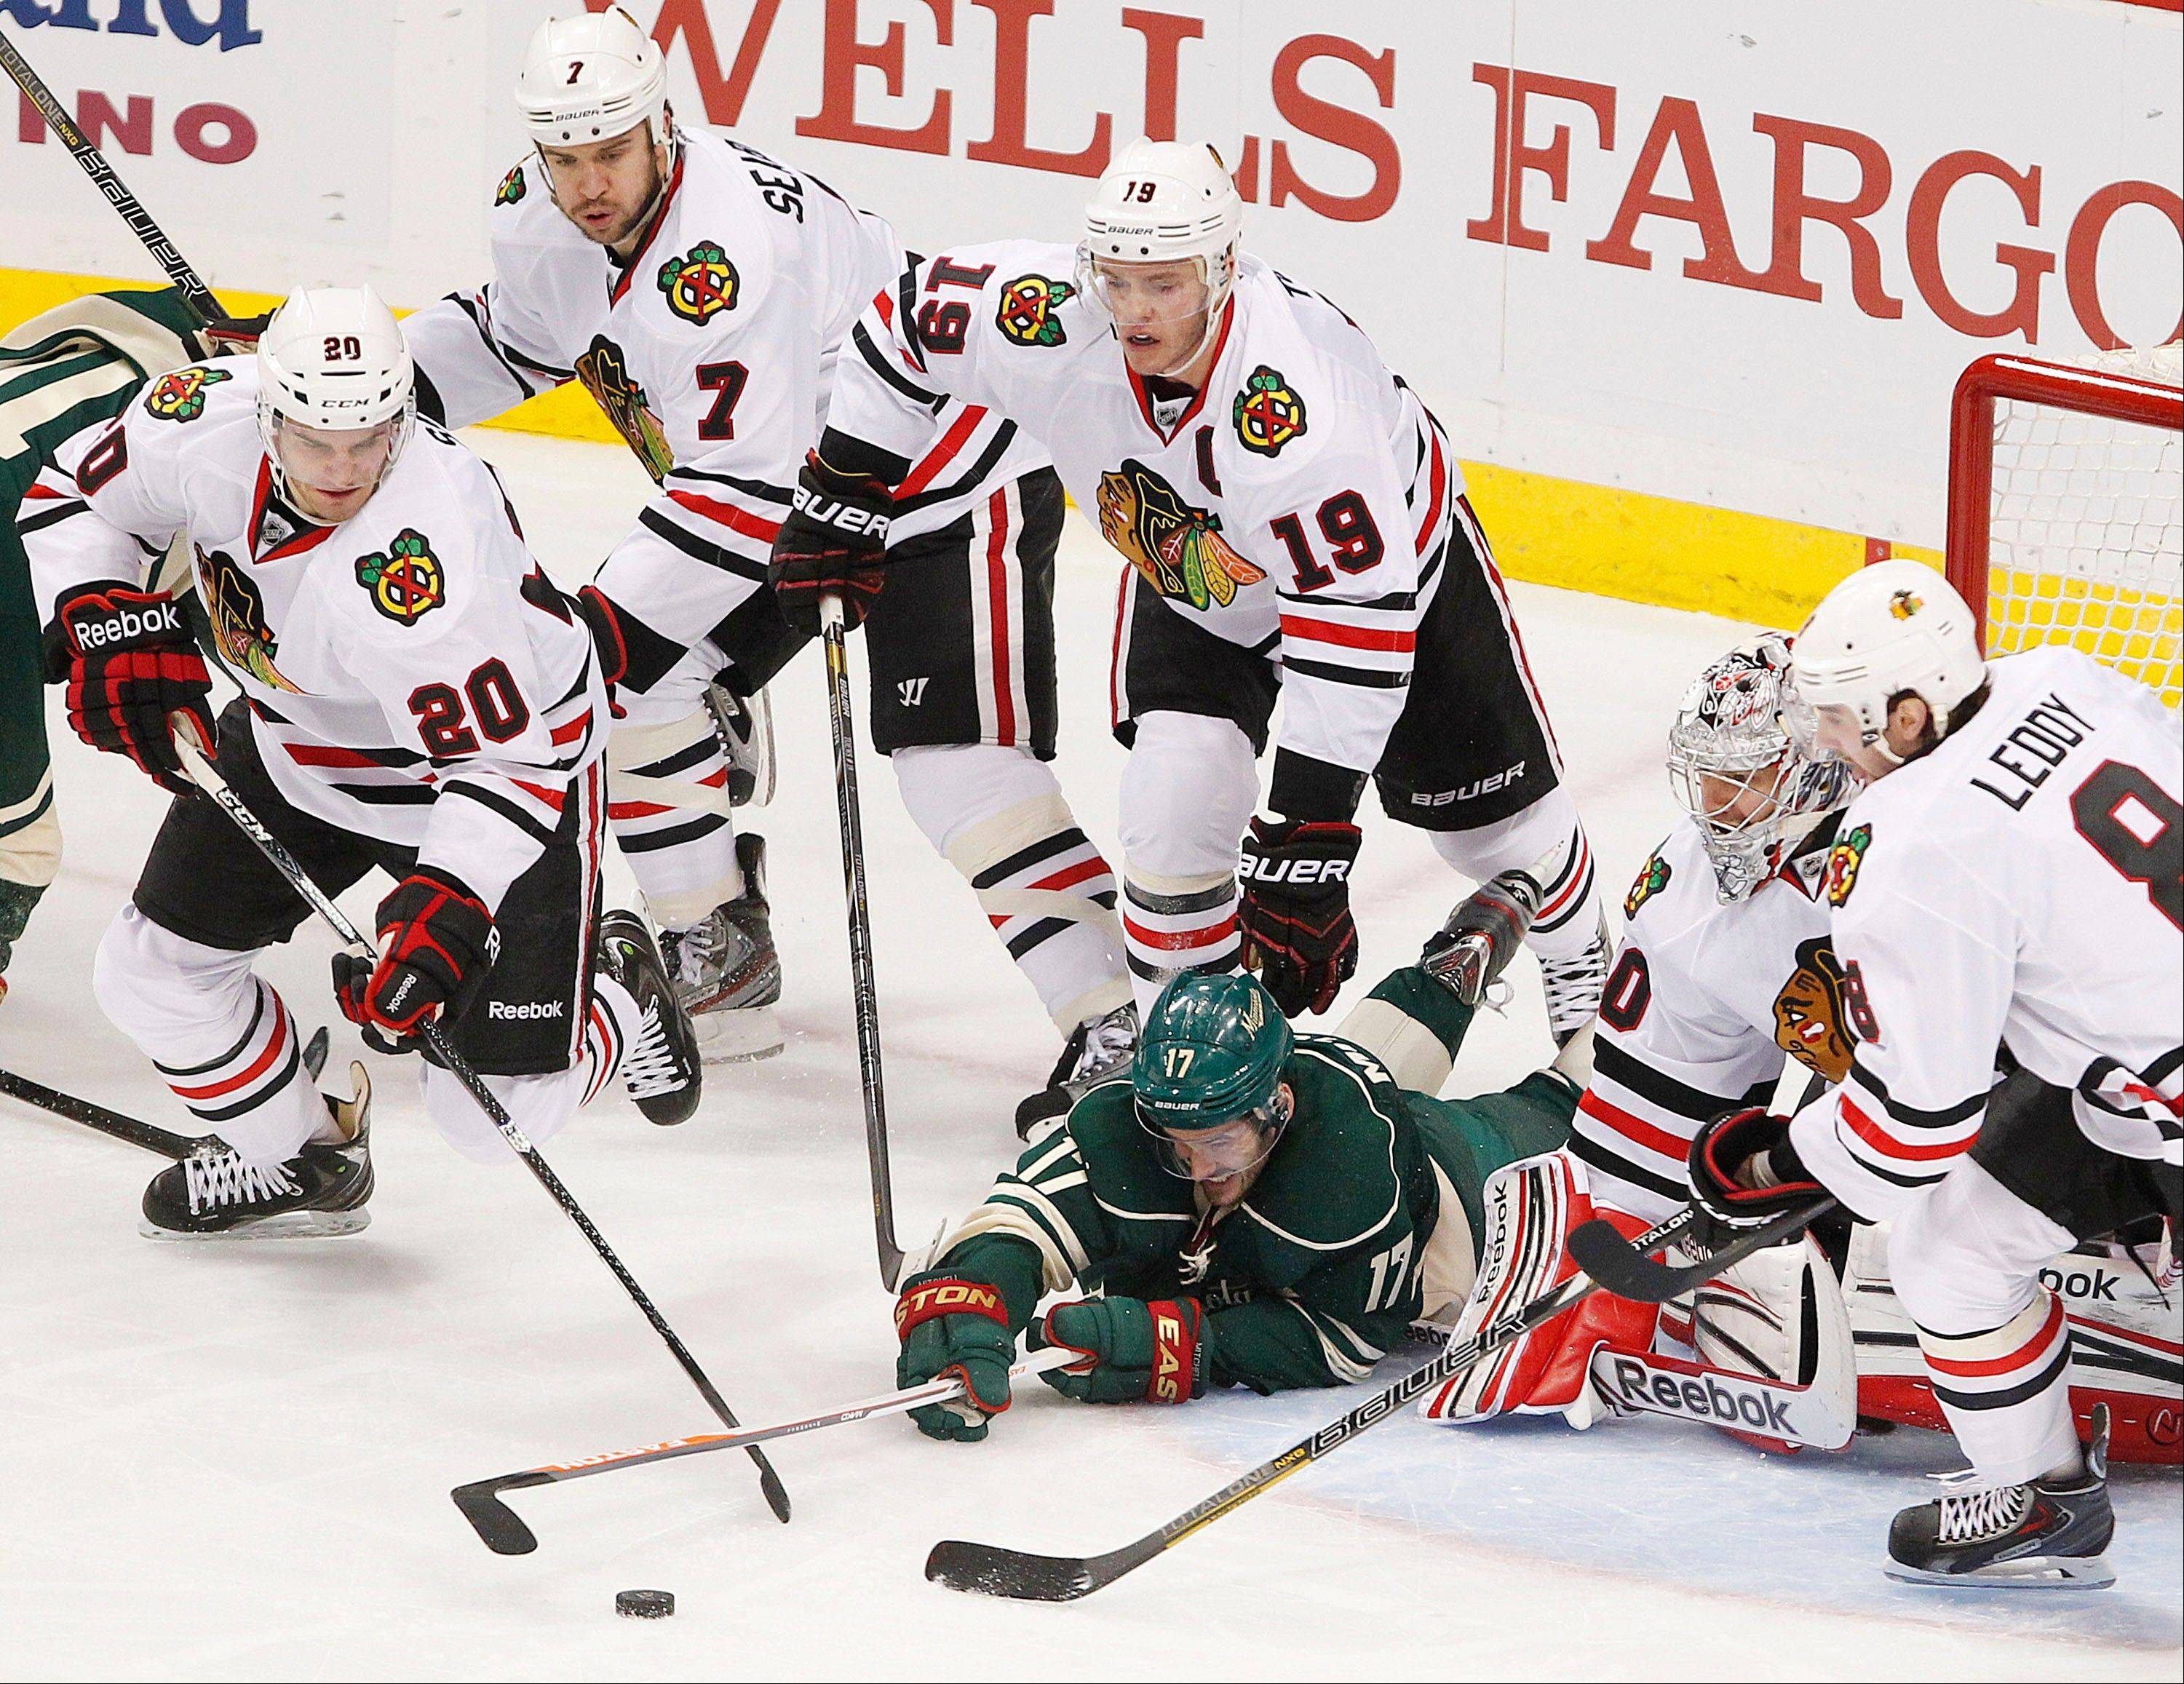 The Hawks need to have all hands on deck, as on this play when they swarmed around Torrey Mitchell on Sunday during the Wild's 3-2 overtime win in Game 3 of their Western Conference playoff series in Minnesota.